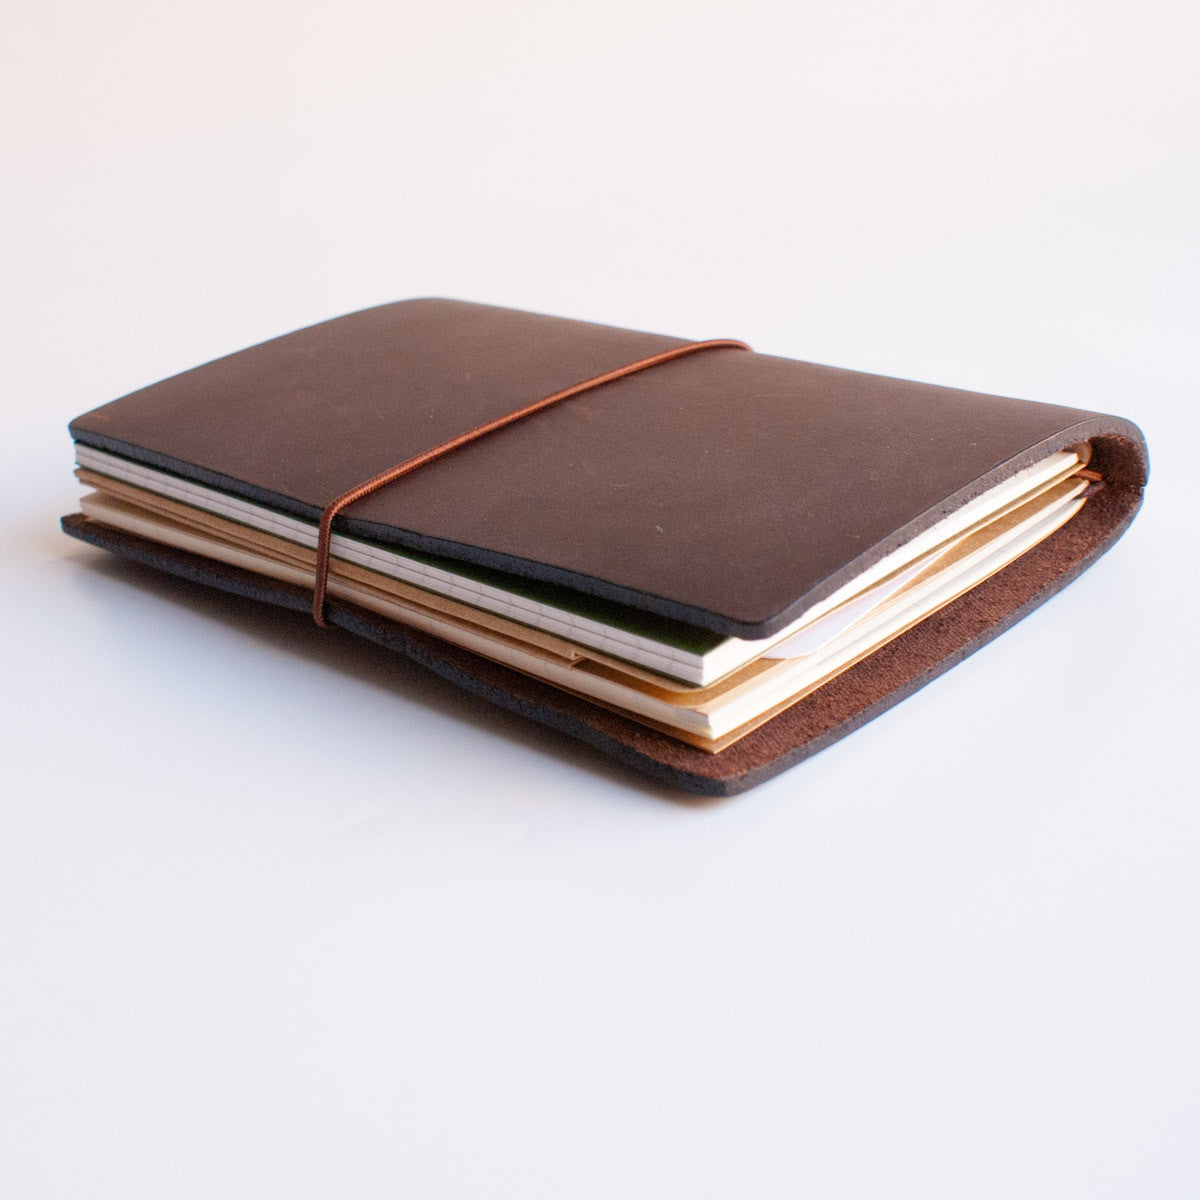 Midori Traveler's Notebook Leather Journal Black